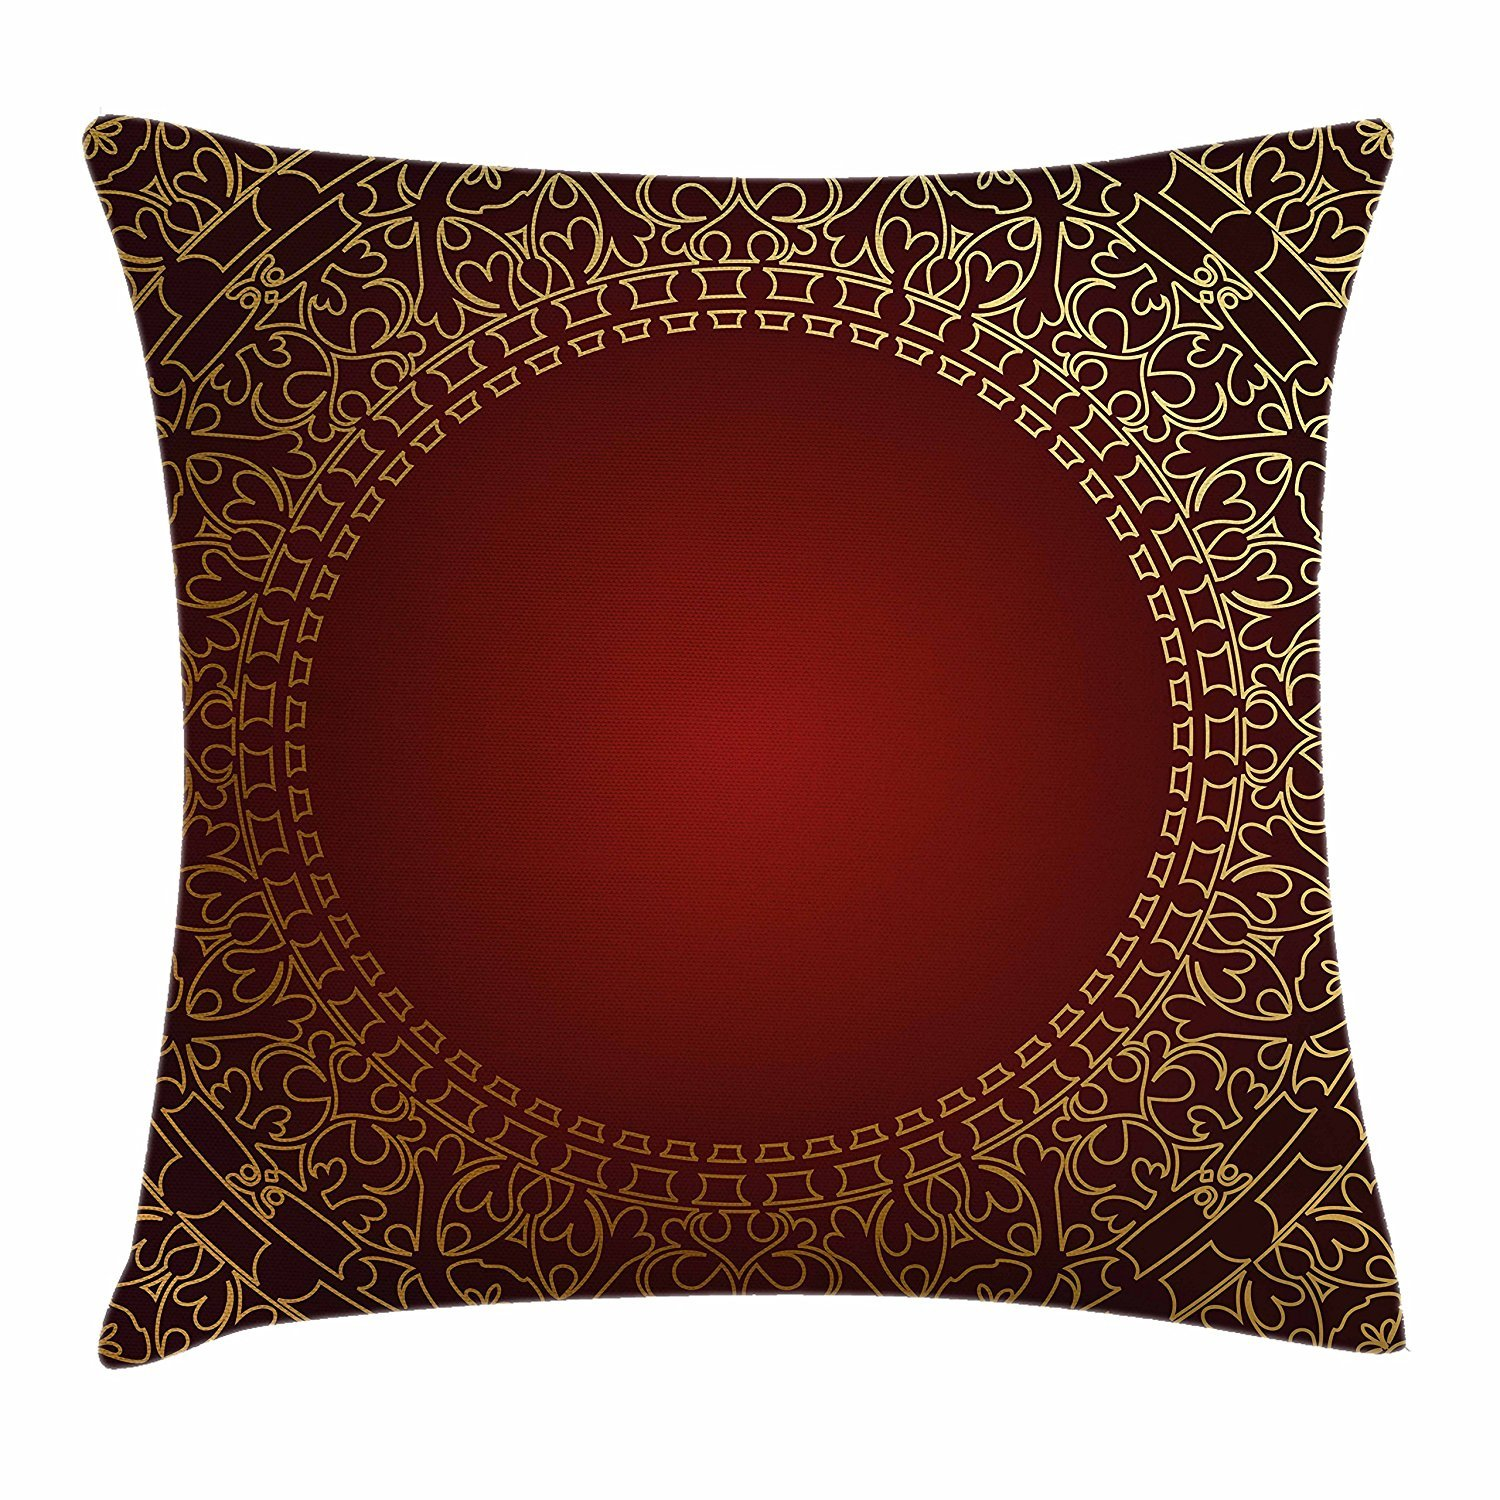 Amazon Com Fengyijiating Maroon Throw Pillow Cushion Cover Vintage Frame With Eastern Motifs Traditional Retro Classic Art Decorative Square Accent Pillow Case 18 X 18 Inch Industrial Scientific